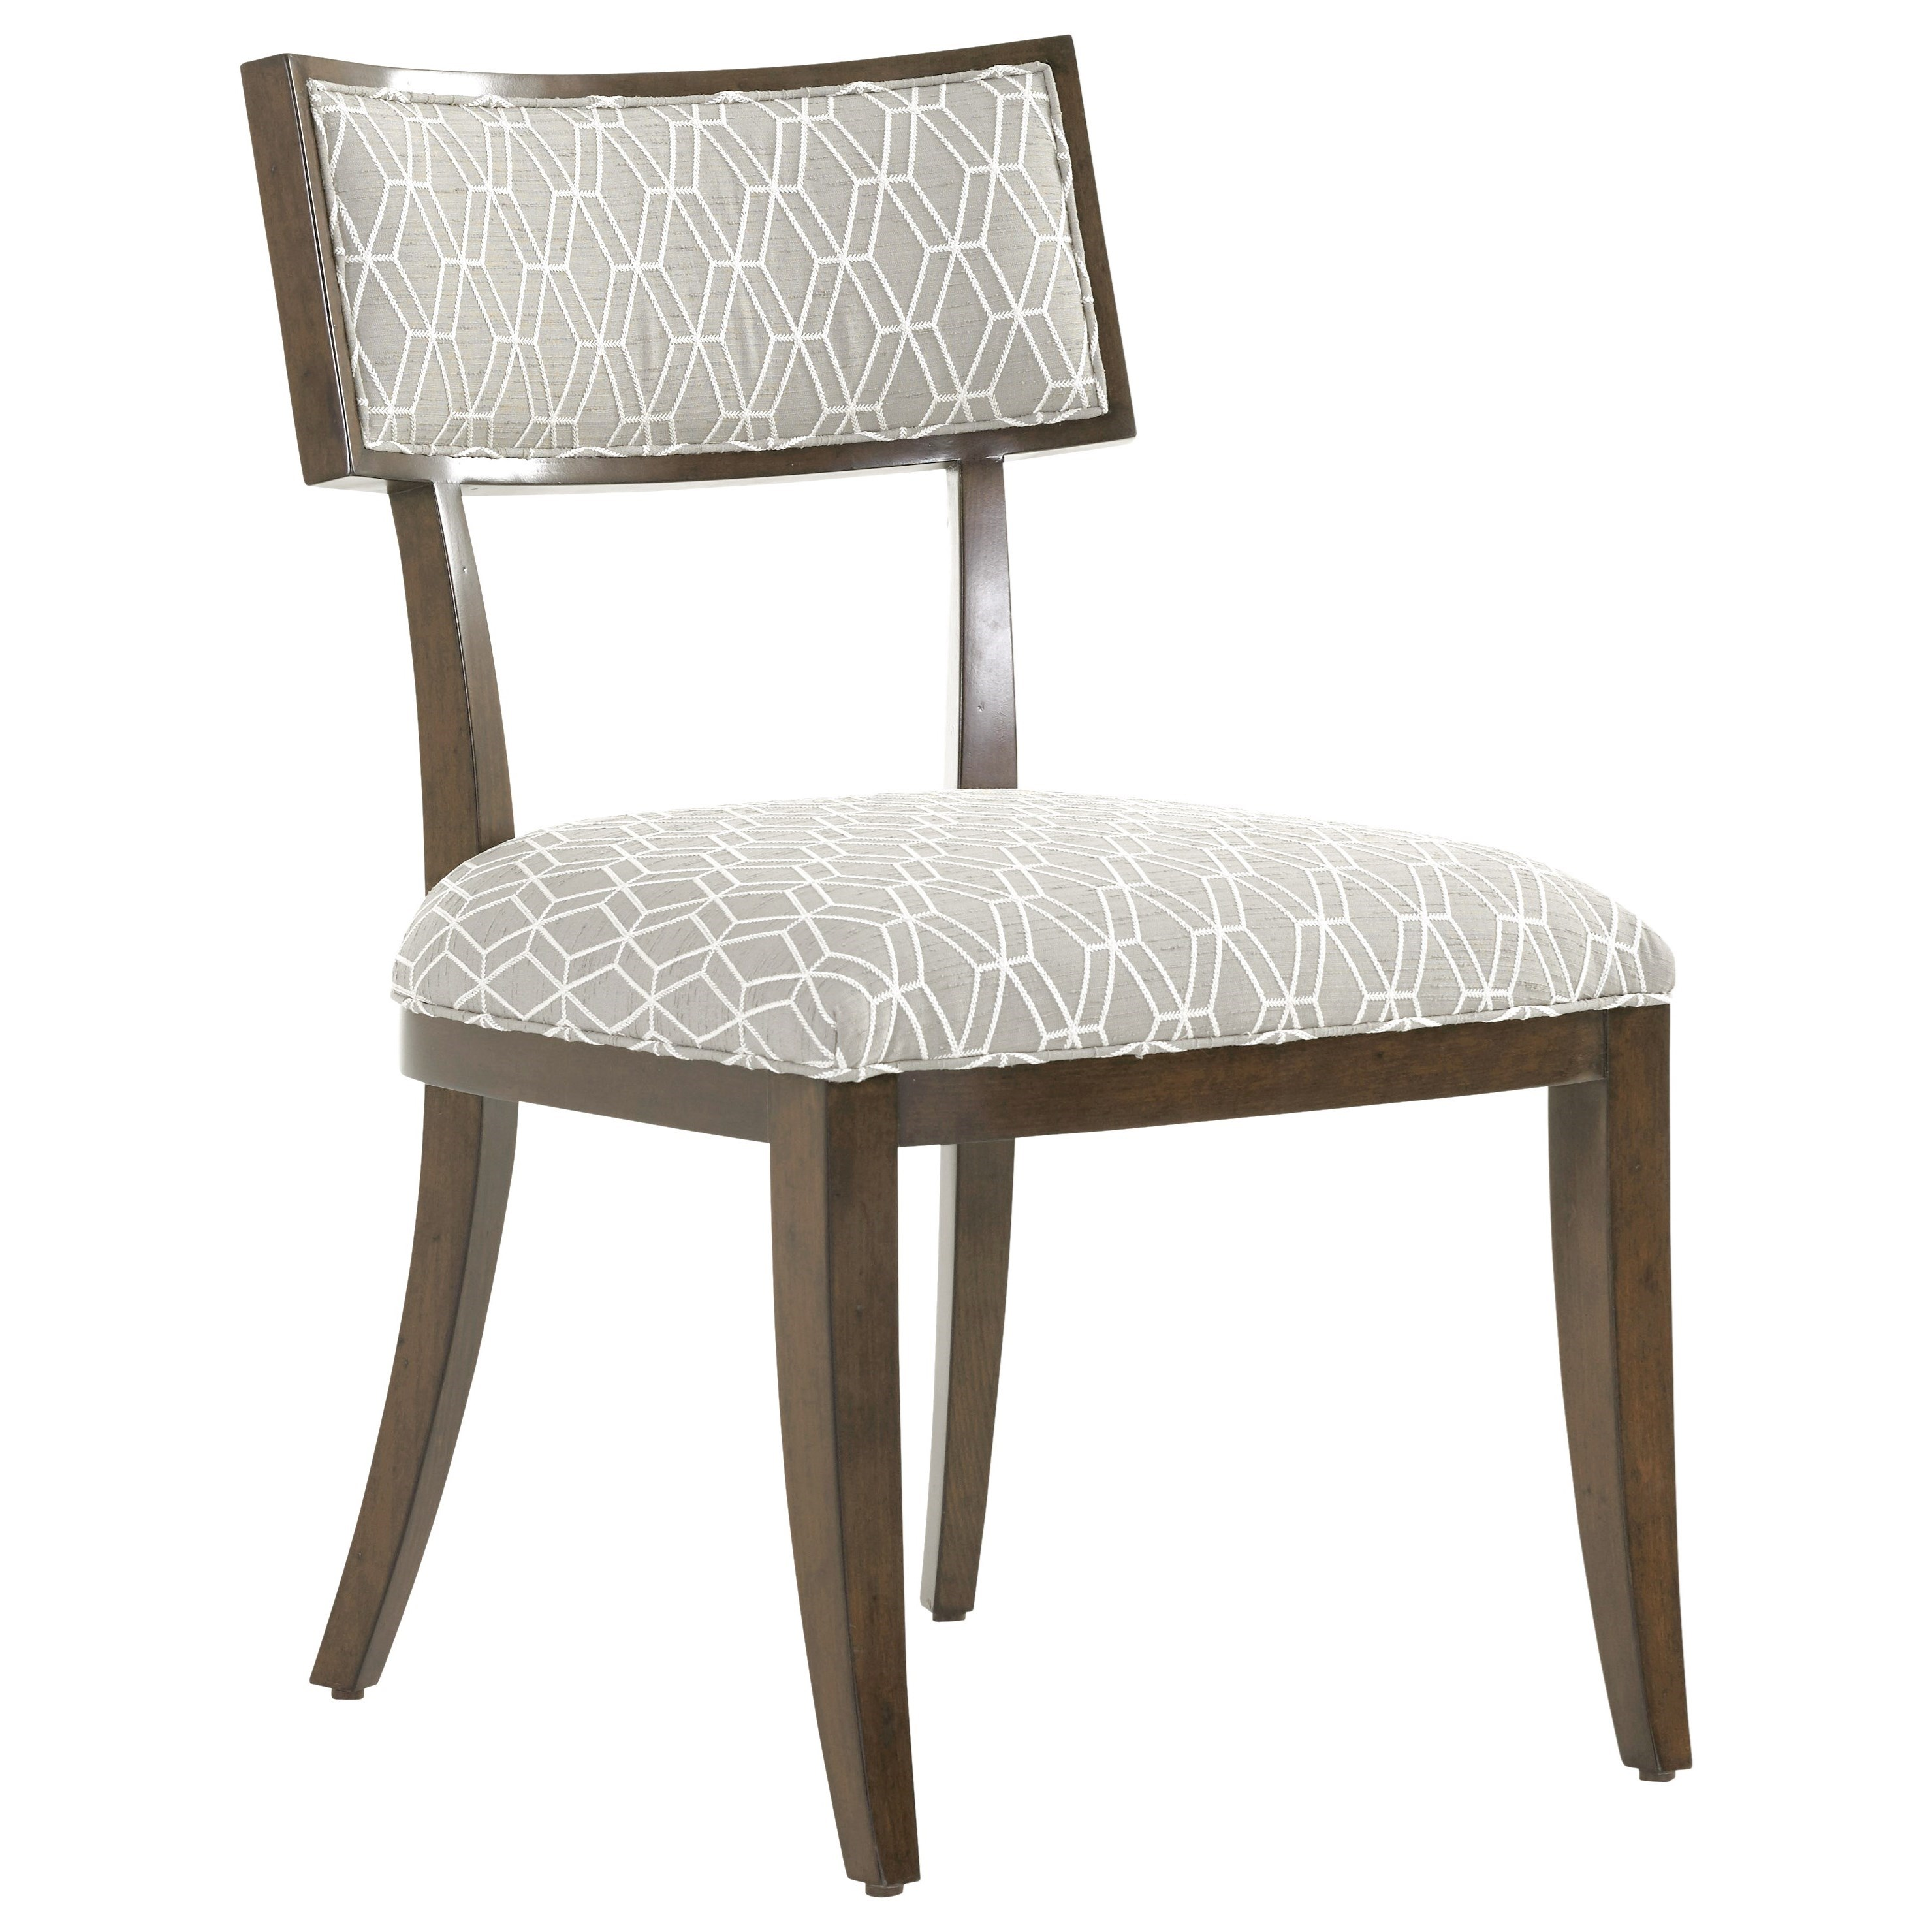 Whittier Side Chair in Custom Fabric